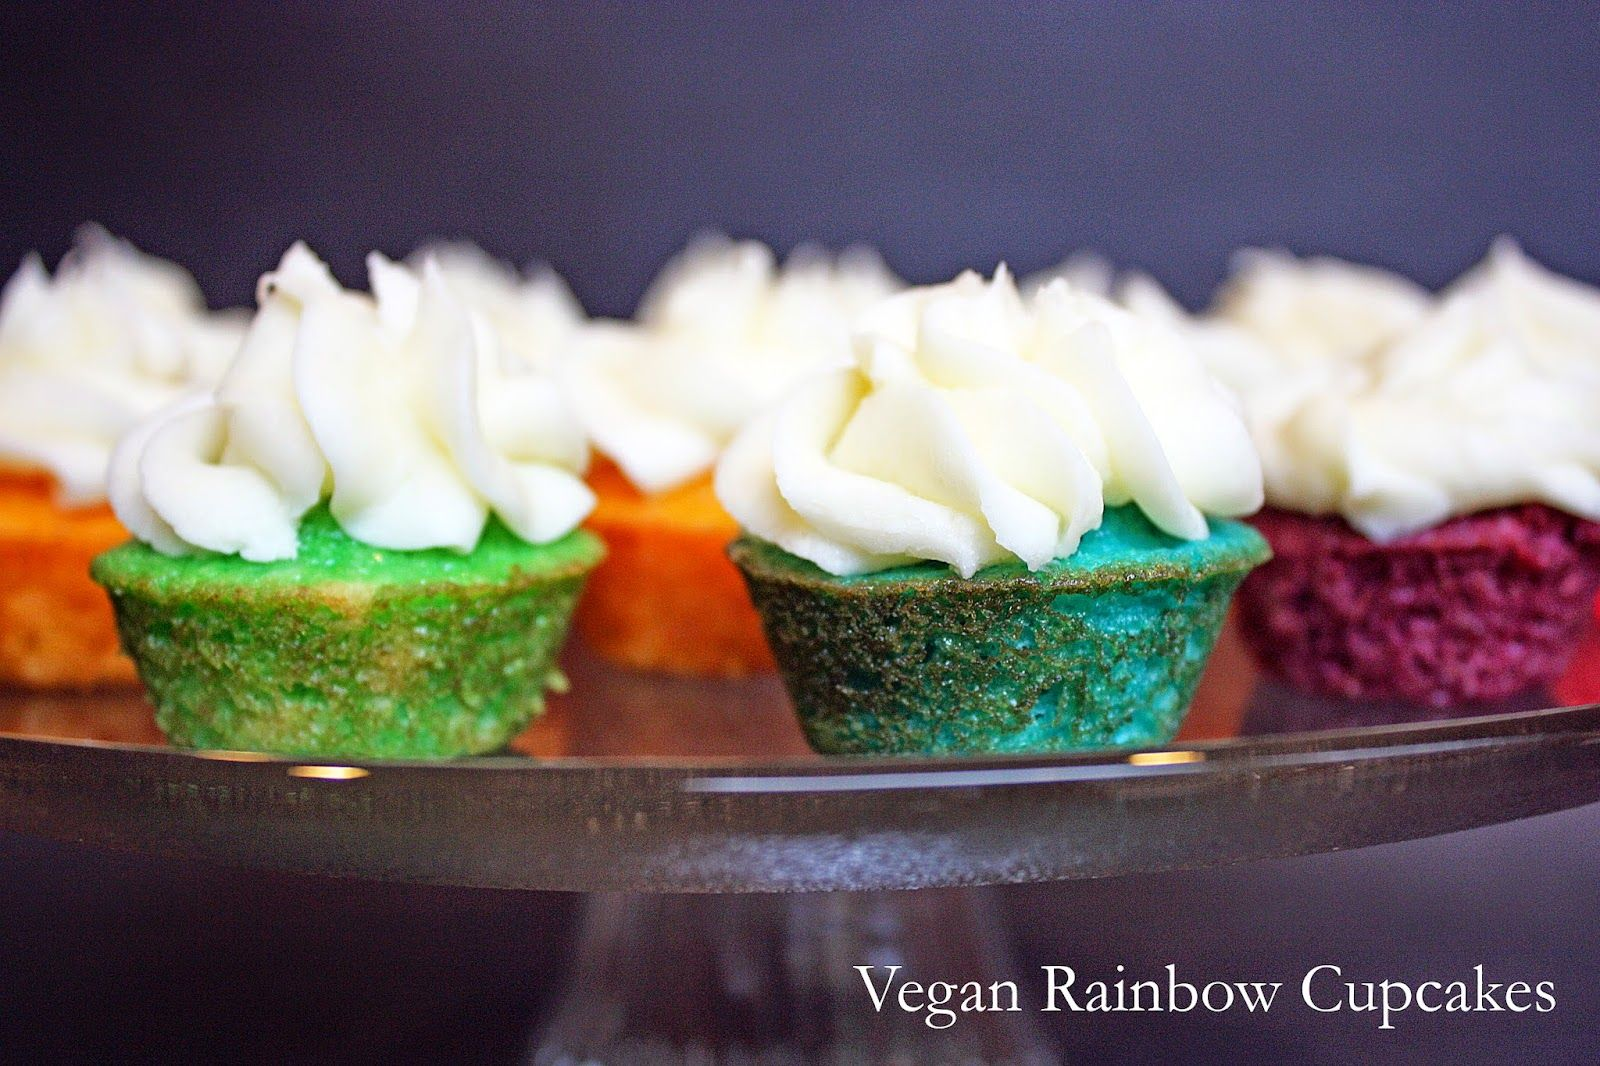 Vegan rainbow mini cupcakes with salted almond buttercream.